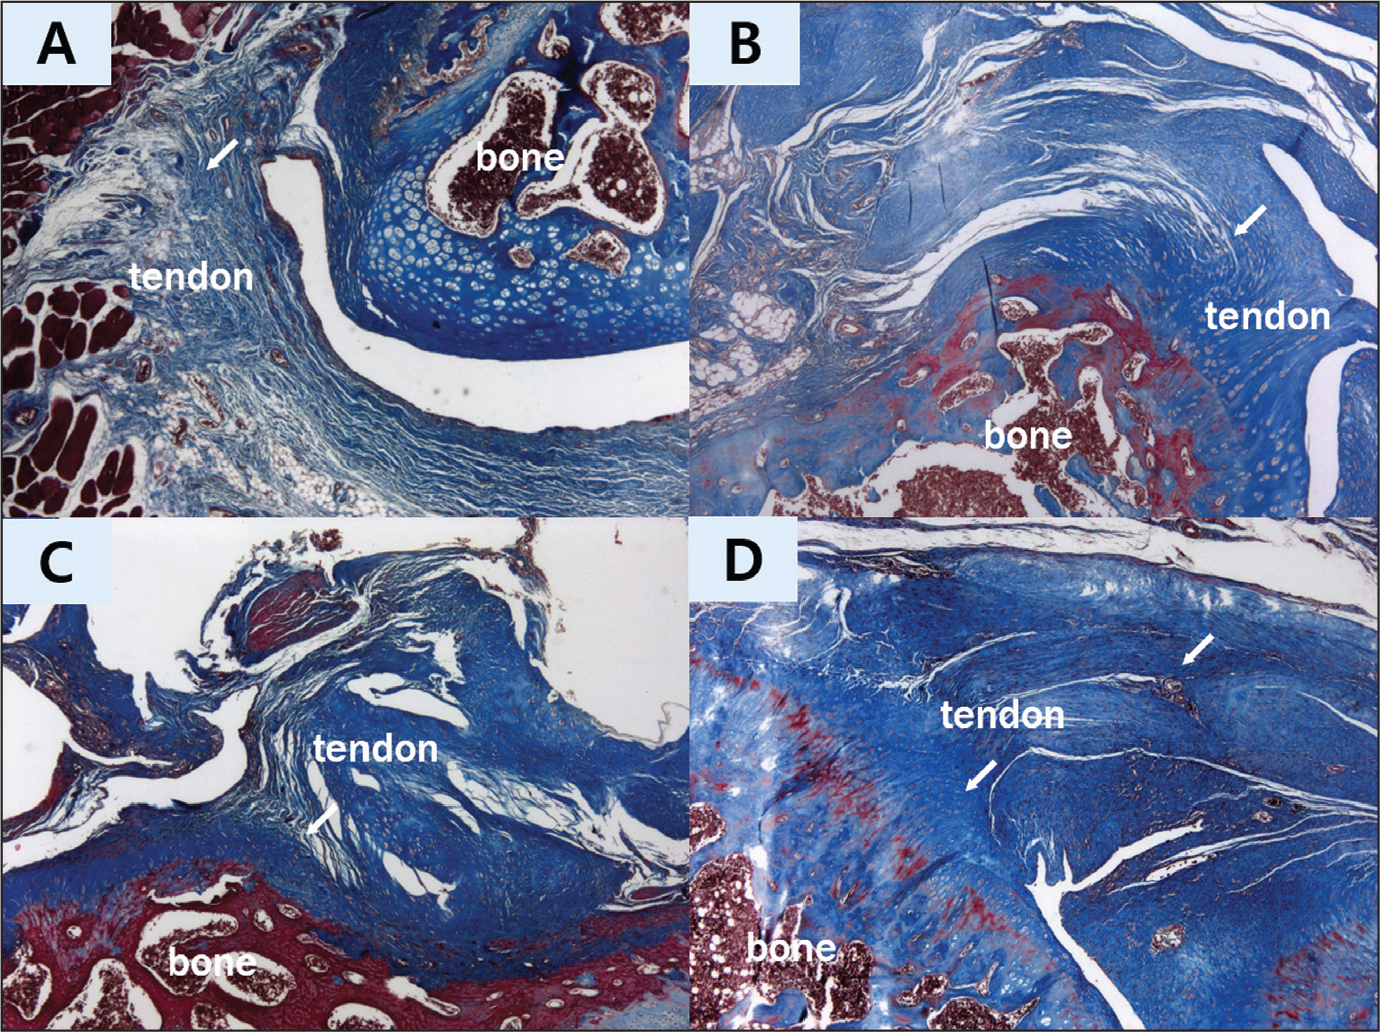 Results of Masson's trichrome staining (original magnification ×50) of the supraspinatus tendon repair site at 6 and 12 weeks after repair. Changes in collagen fiber arrangements. Supraspinatus repair only at 6 weeks (group 1—control) (A). Supraspinatus repair only at 12 weeks (group 1) (B). Supraspinatus repair with alginate sheet at 6 weeks (group 2) (C). Supraspinatus repair with alginate sheet at 12 weeks (group 2) (D). In group 1, the collagen fibers (arrows) were poorly organized and fiber continuity with the bone had not yet been established. In group 2, a more organized structure with a higher collagen fiber (arrows) density was observed compared with group 1. Furthermore, more collagen fibers bridged the interface, revealing good tendon-to-bone (arrows) integration, and longitudinally oriented collagen fibers were also visible.